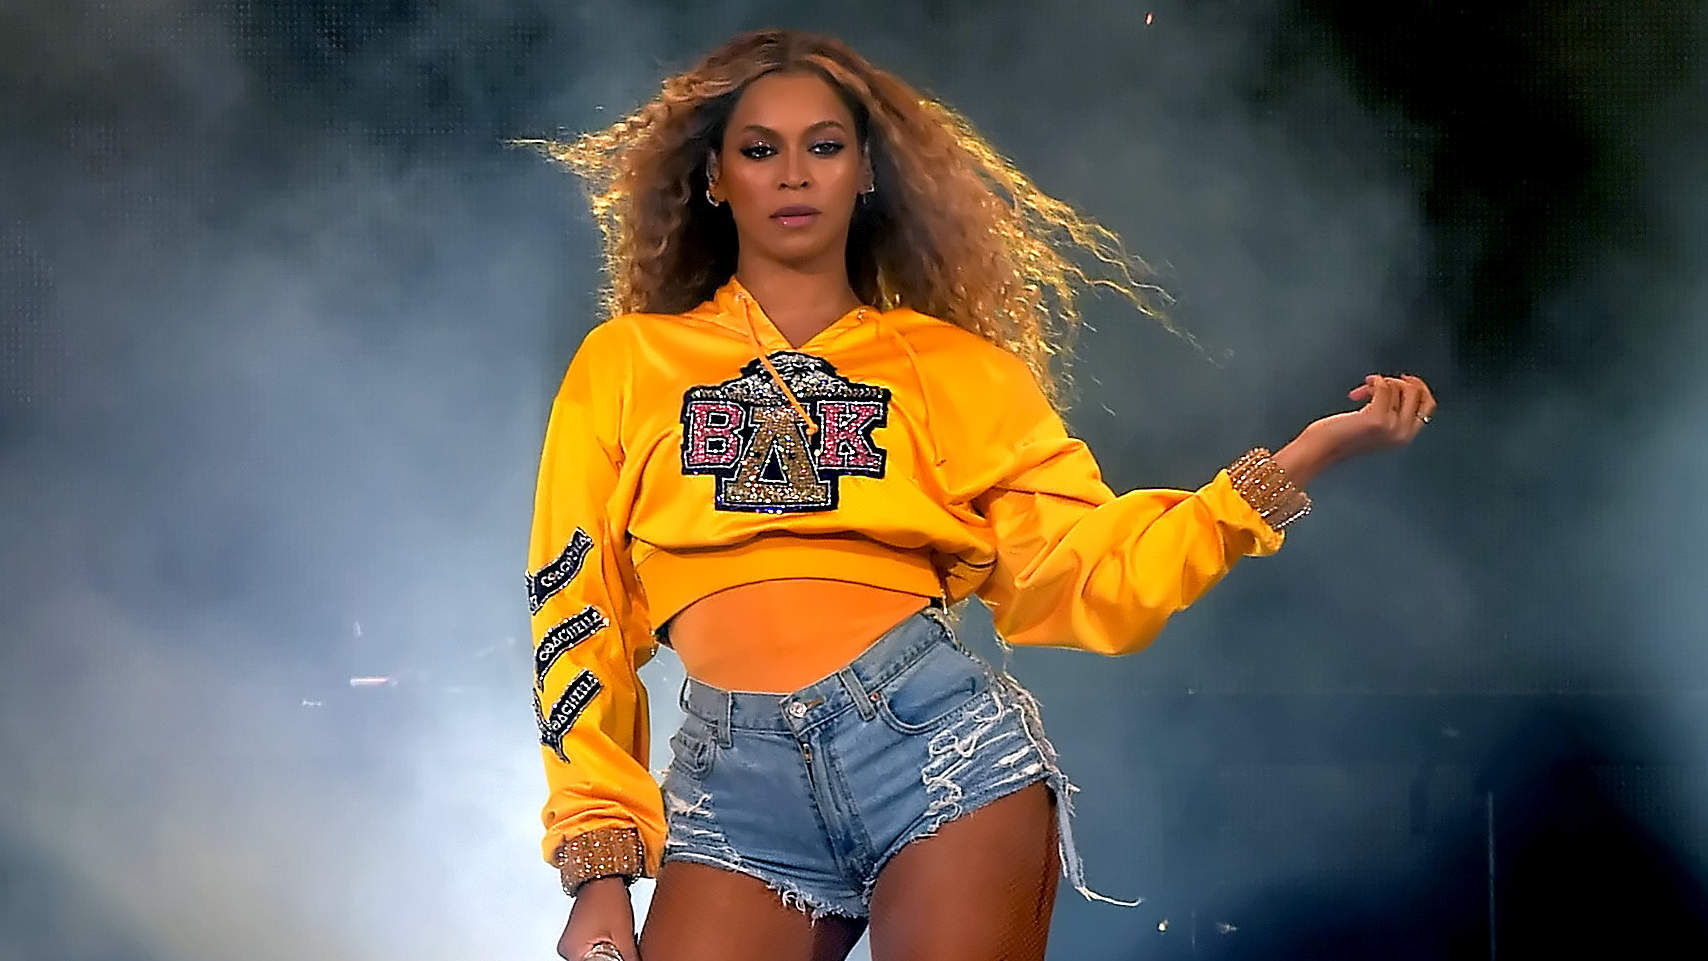 Beyoncé's Coachella Diet Involved Cutting Out Carbs, Sugar, Dairy, and Meat—but Is That Safe?